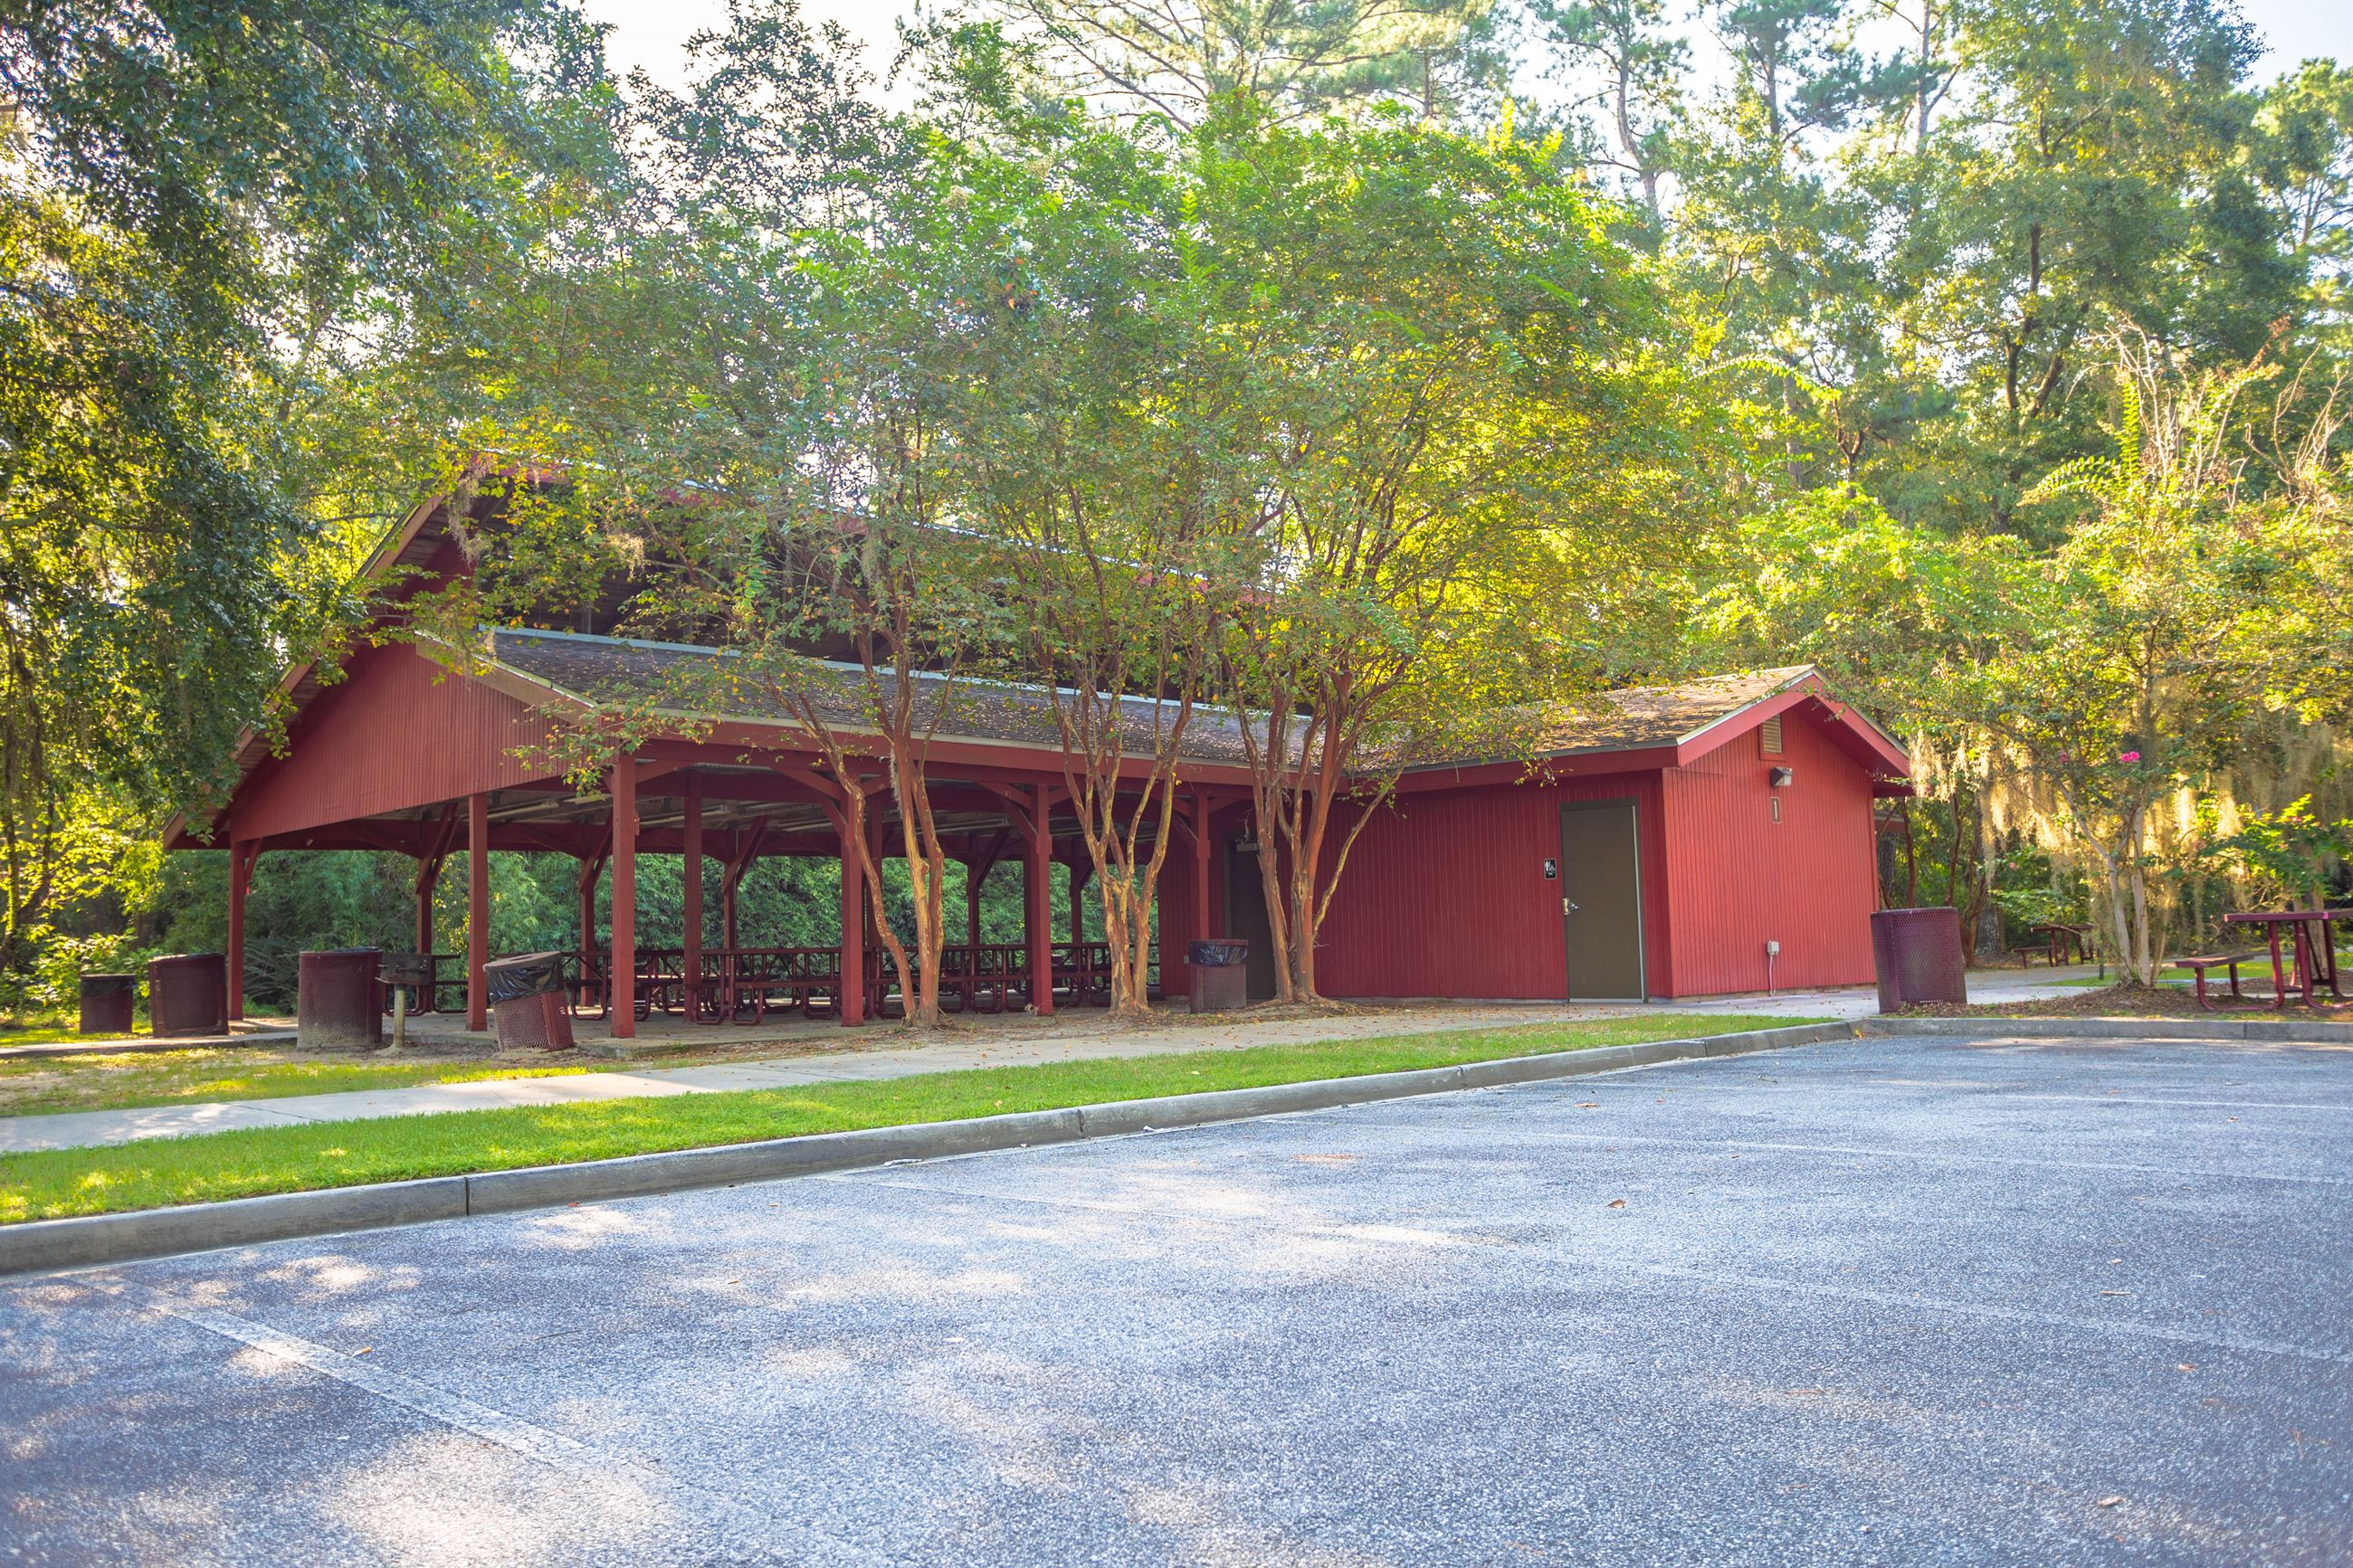 An image of a large red picnic shelter that can hold over 100 people surrounded by trees.